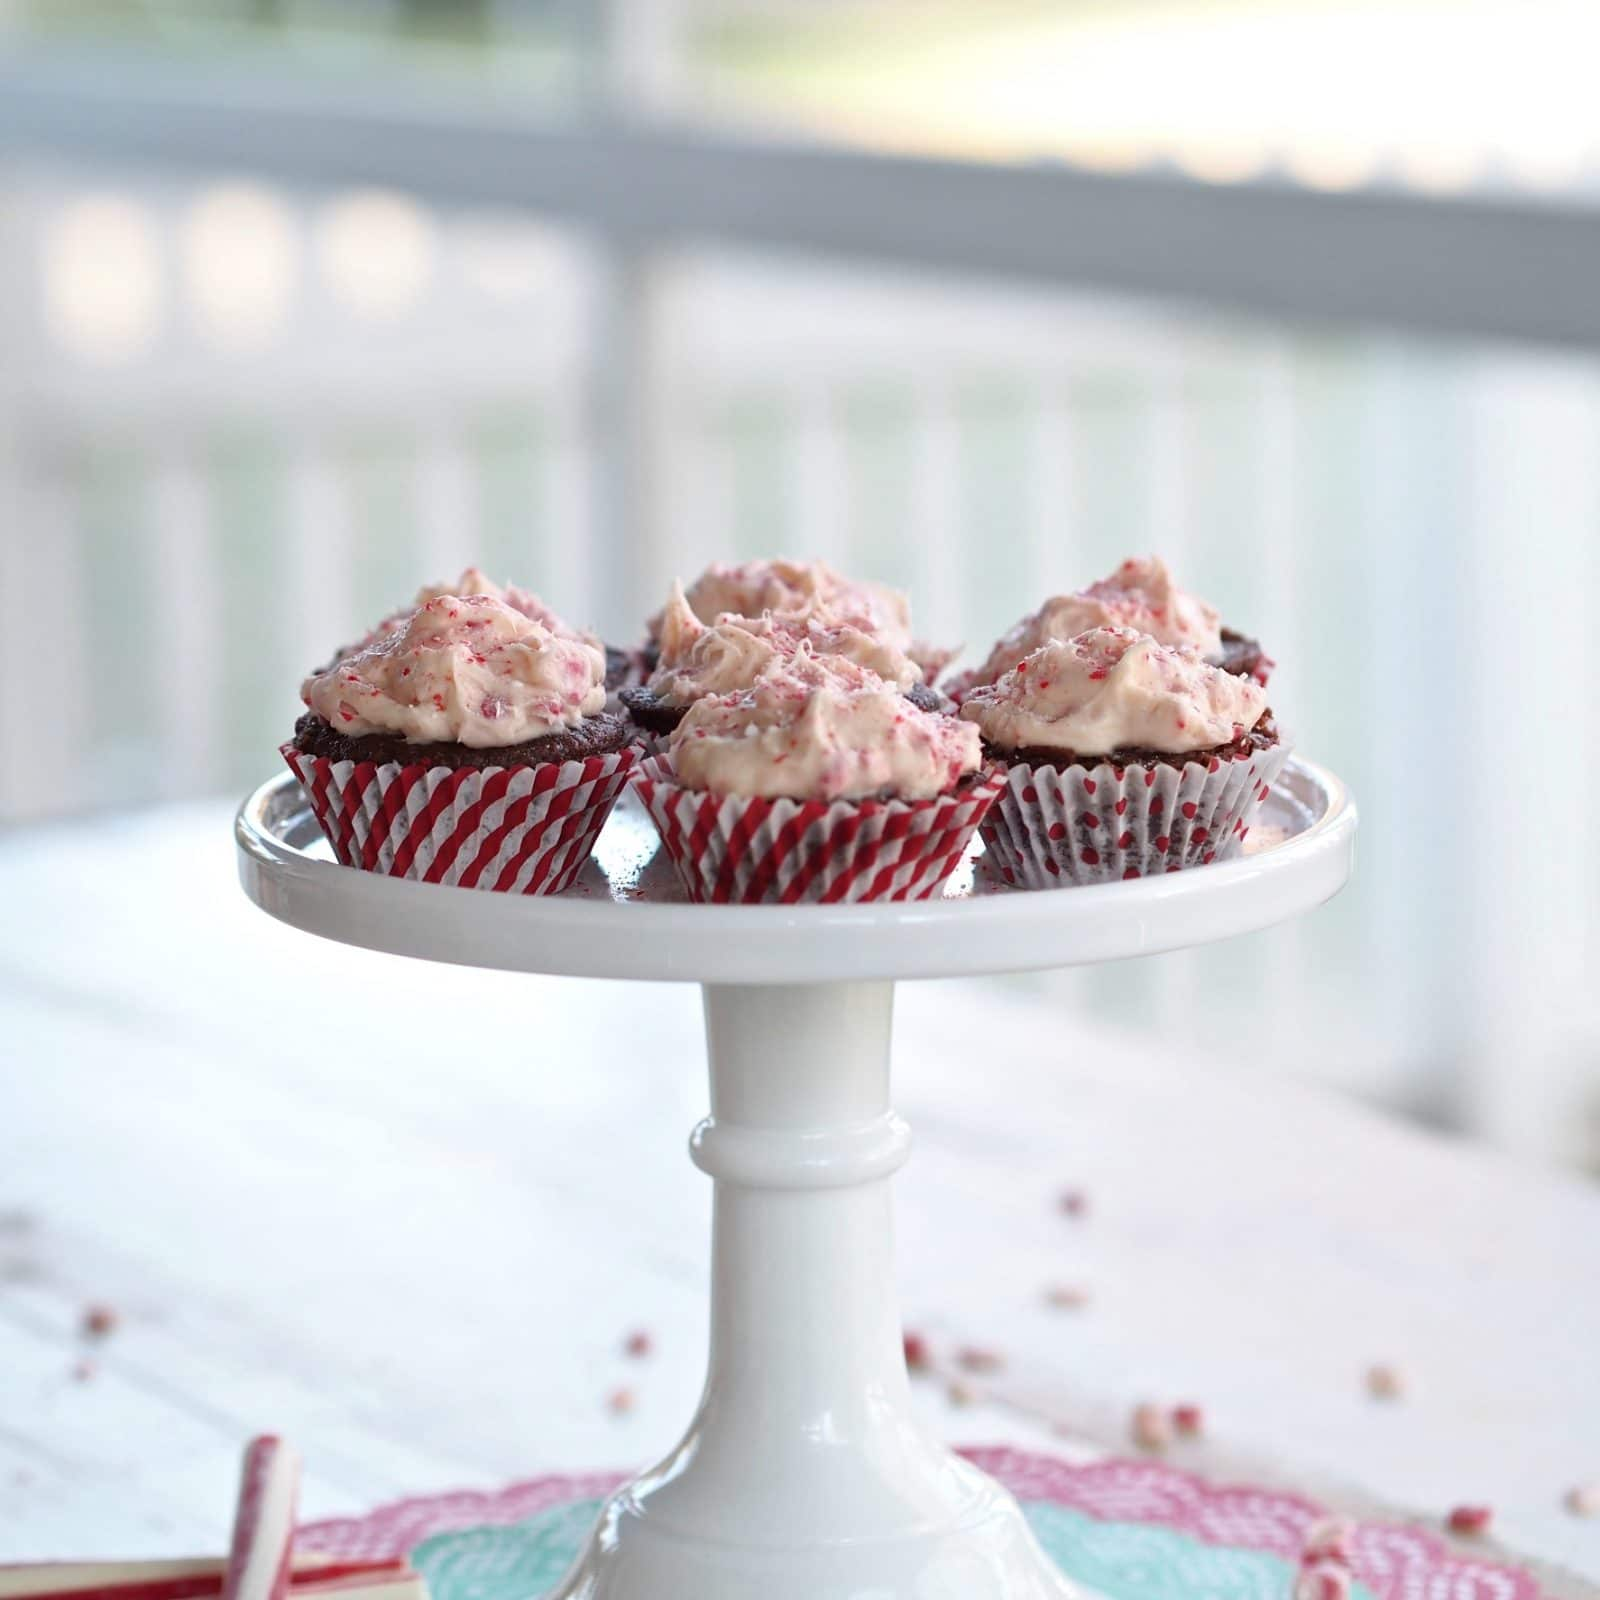 White Chocolate & Peppermint Chocolate Cupcakes -Velvety chocolate cupcakes with easy white chocolate, peppermint icing.